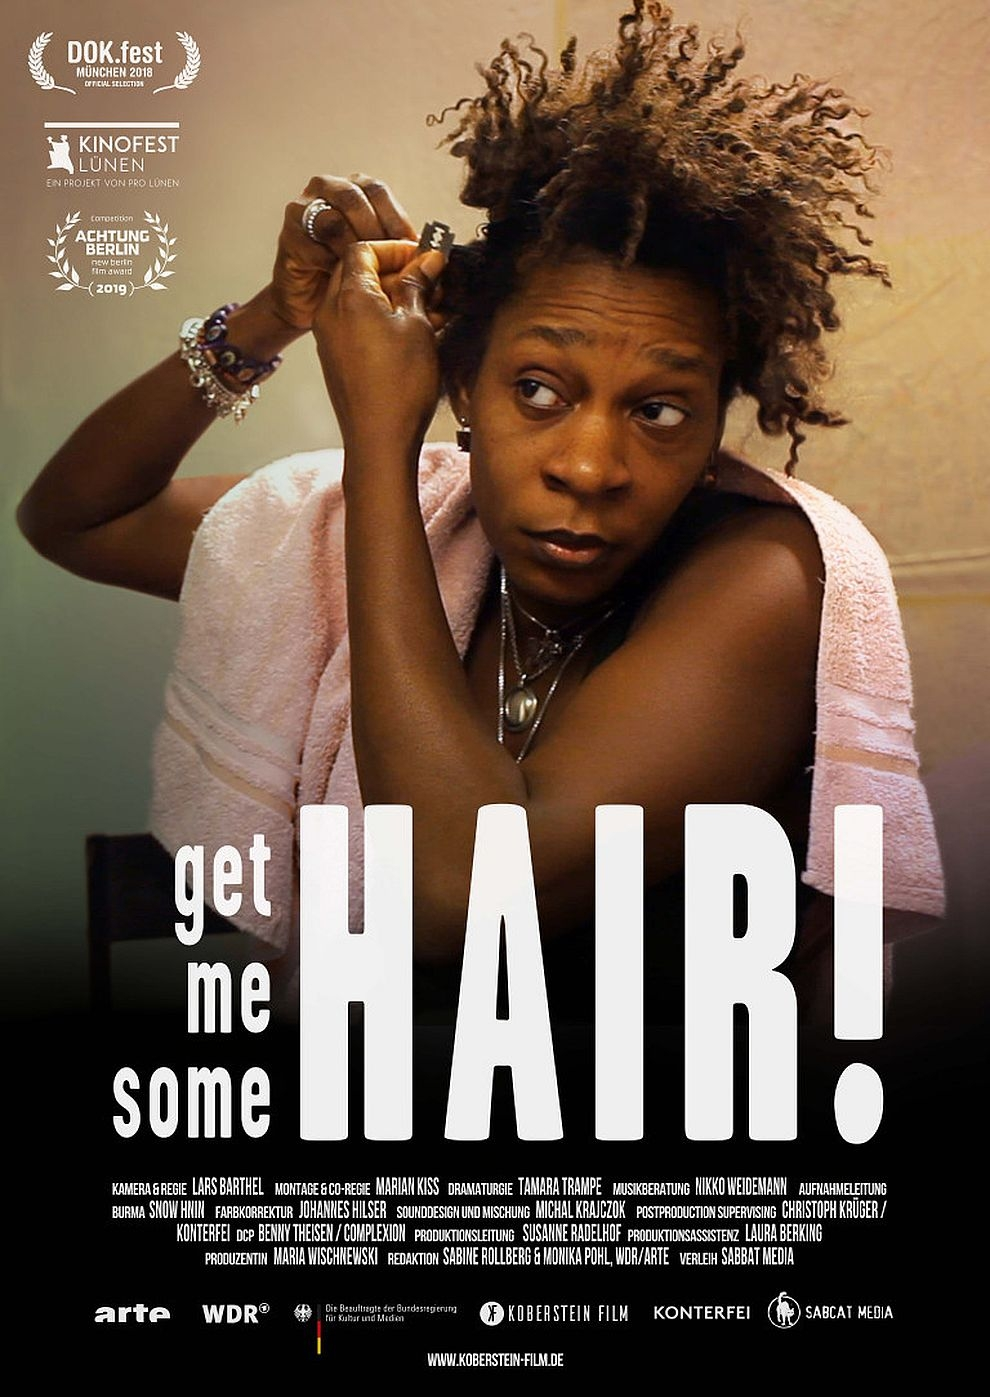 get me some HAIR! (Poster)